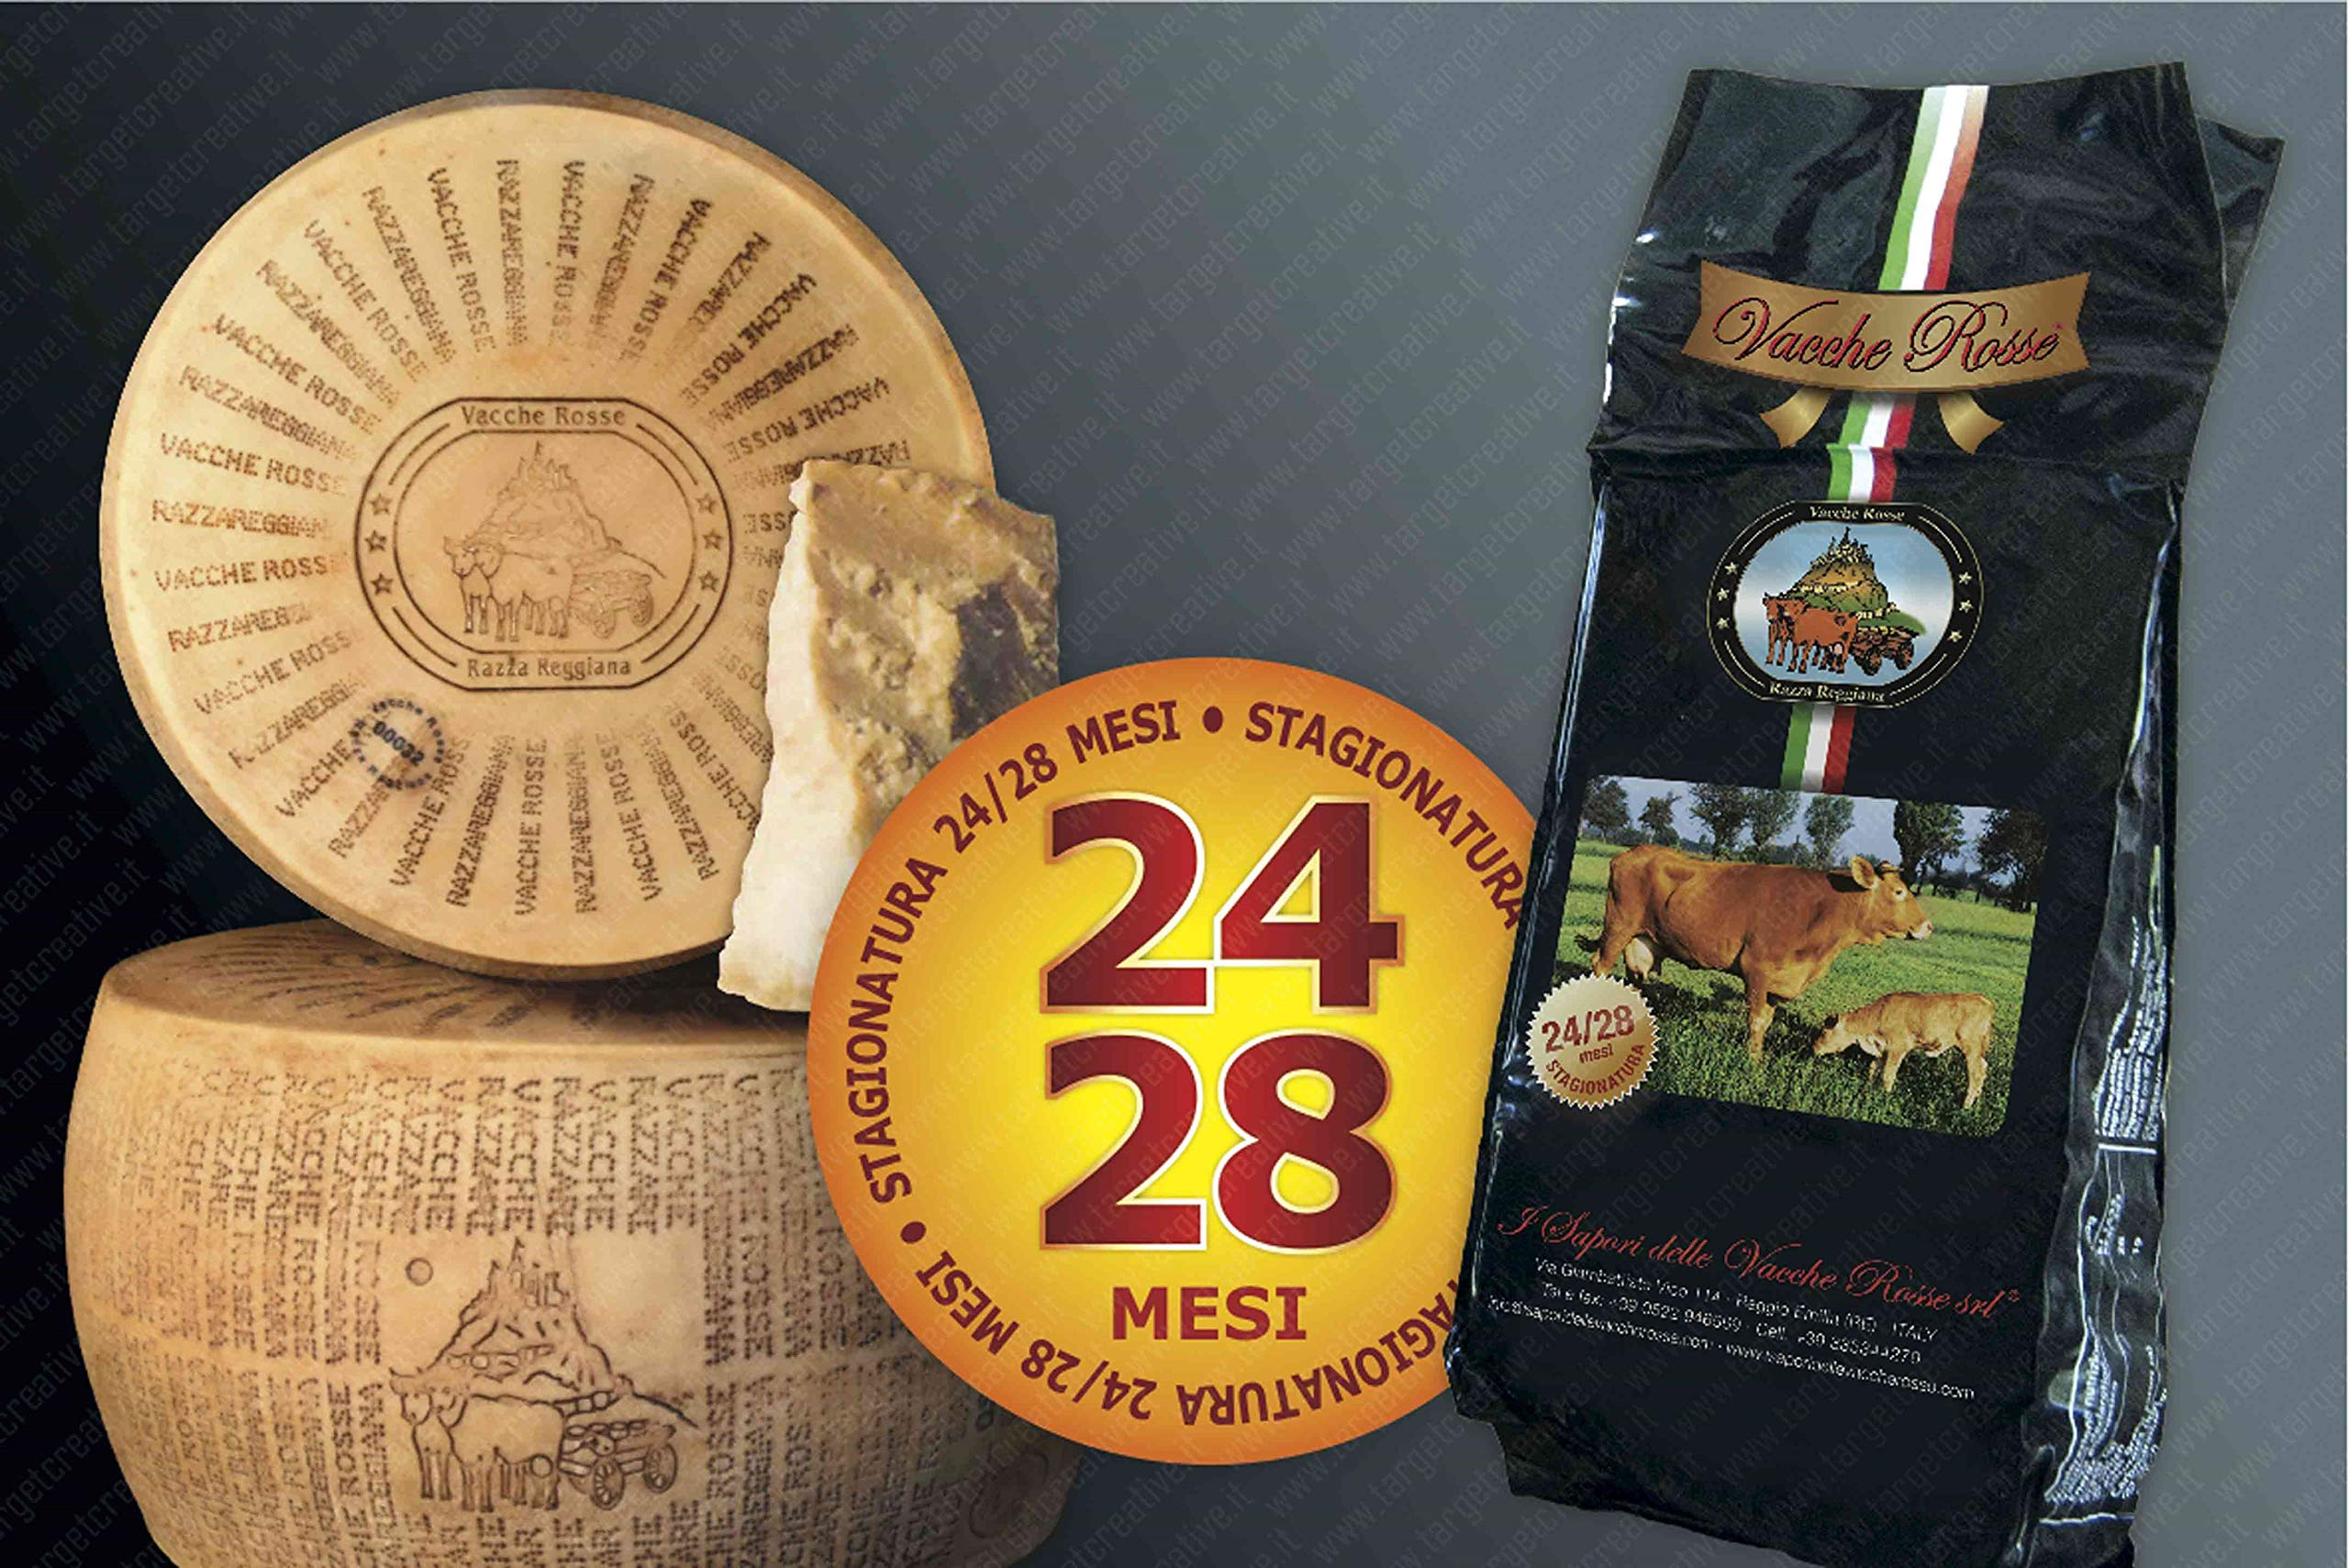 I Sapori Delle Vacche Rosse - Cheese Vacche Rosse - 24/28 Months (1 kg) by YesEatIs (Image #2)